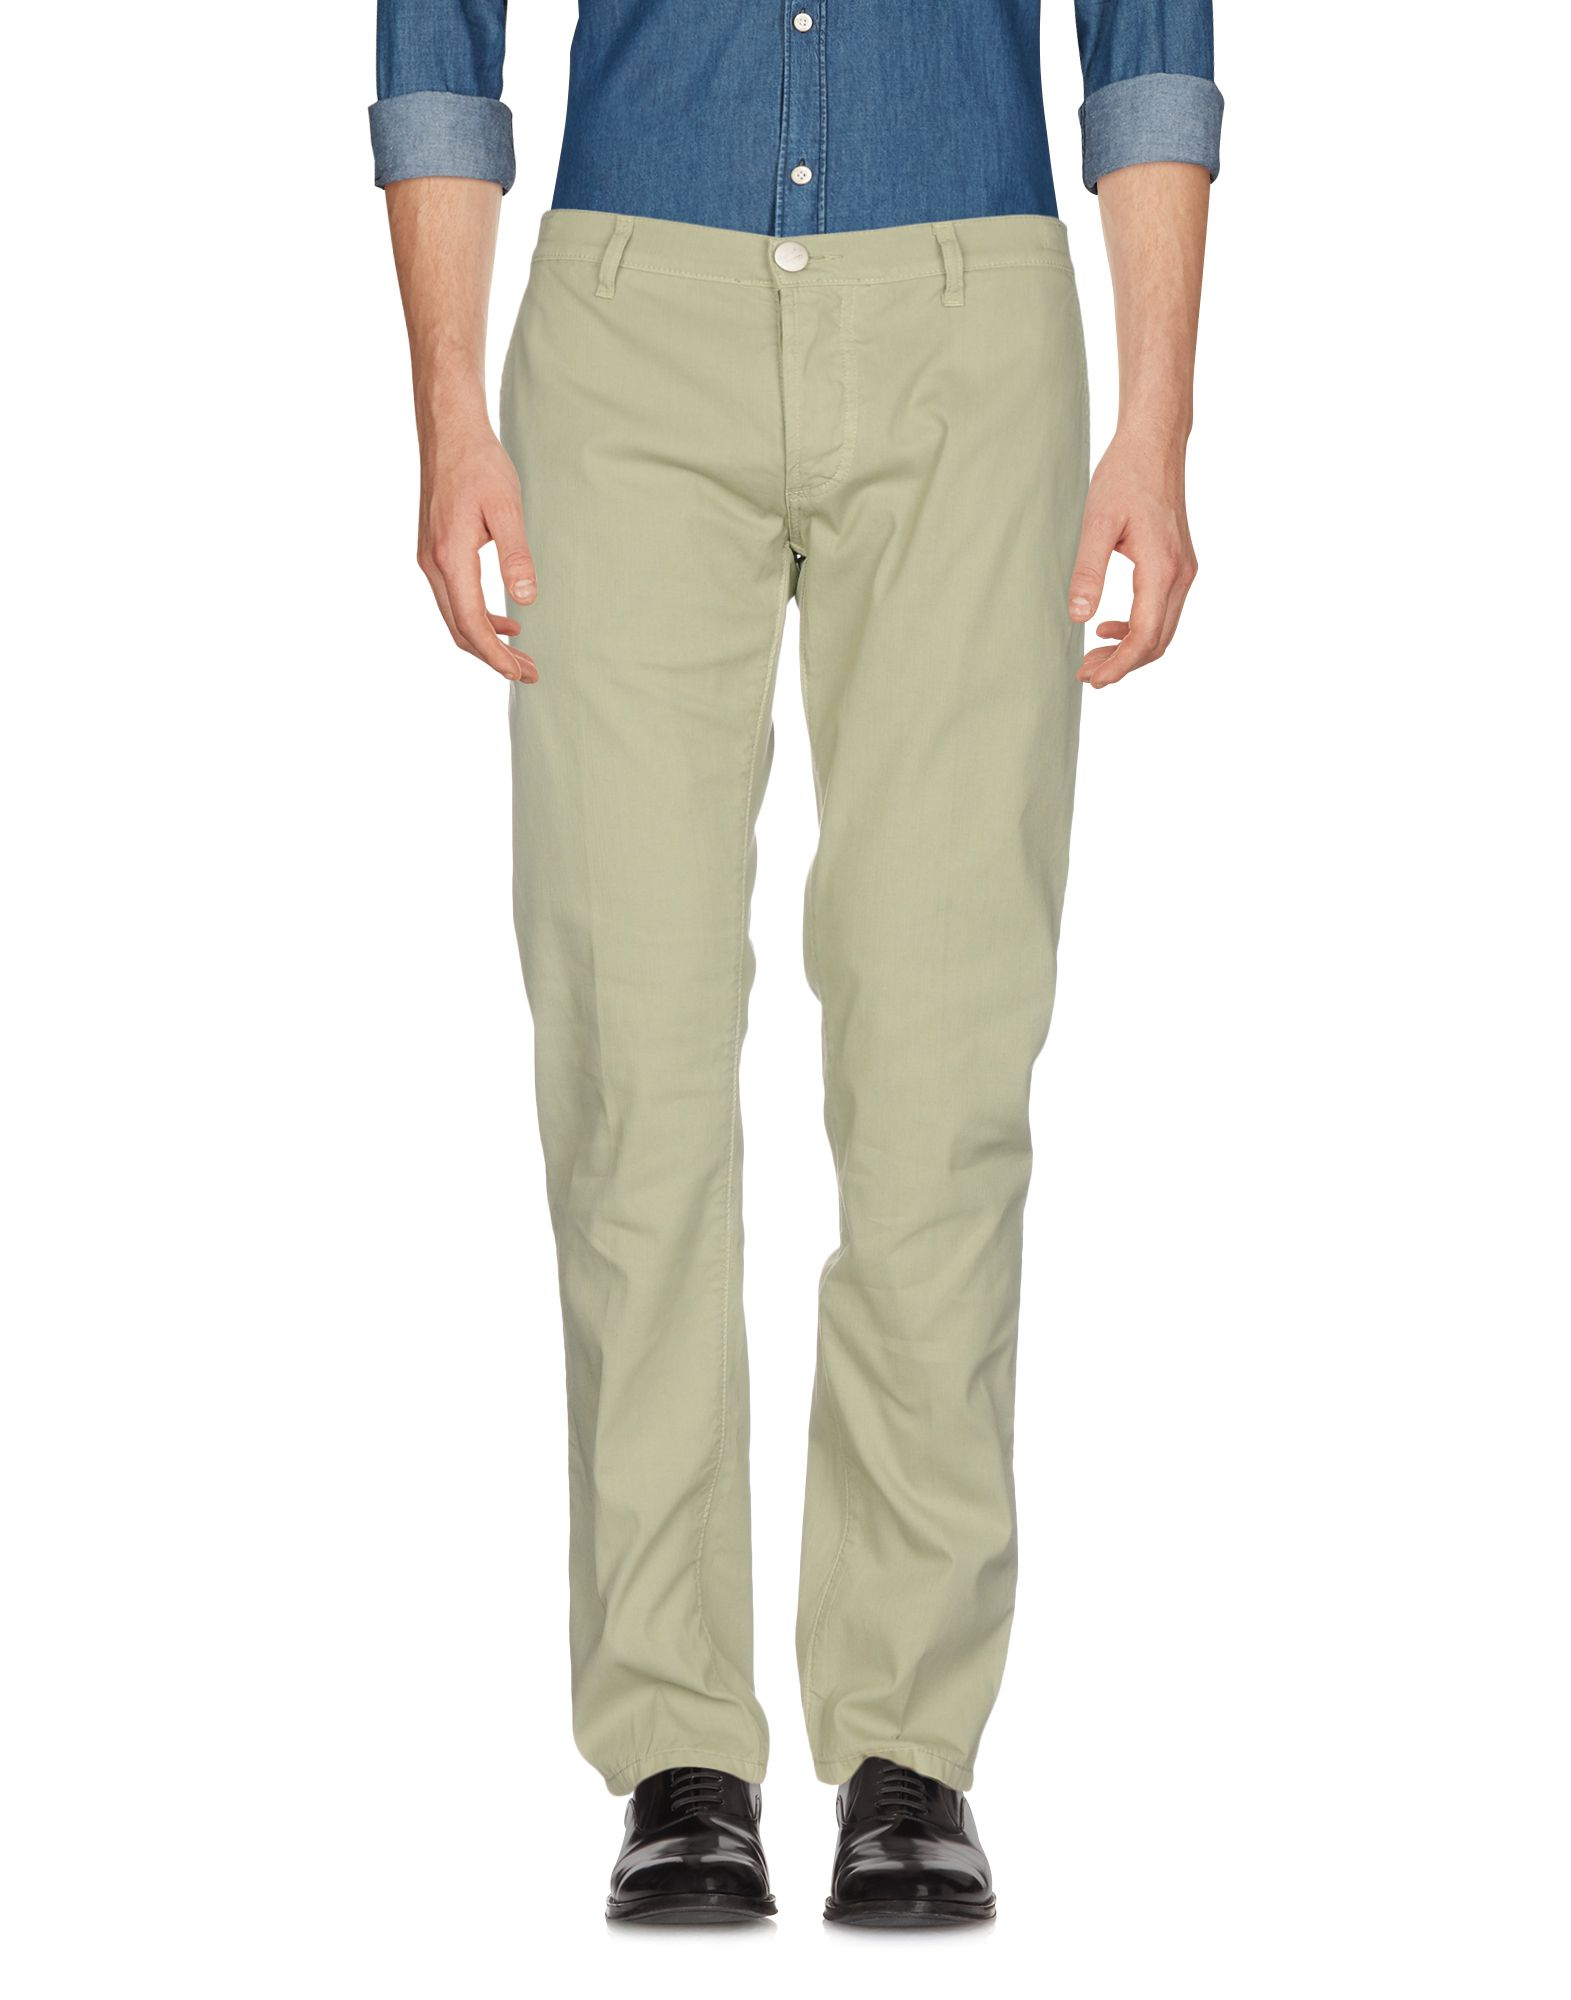 CESARE ATTOLINI Casual Pants in Military Green